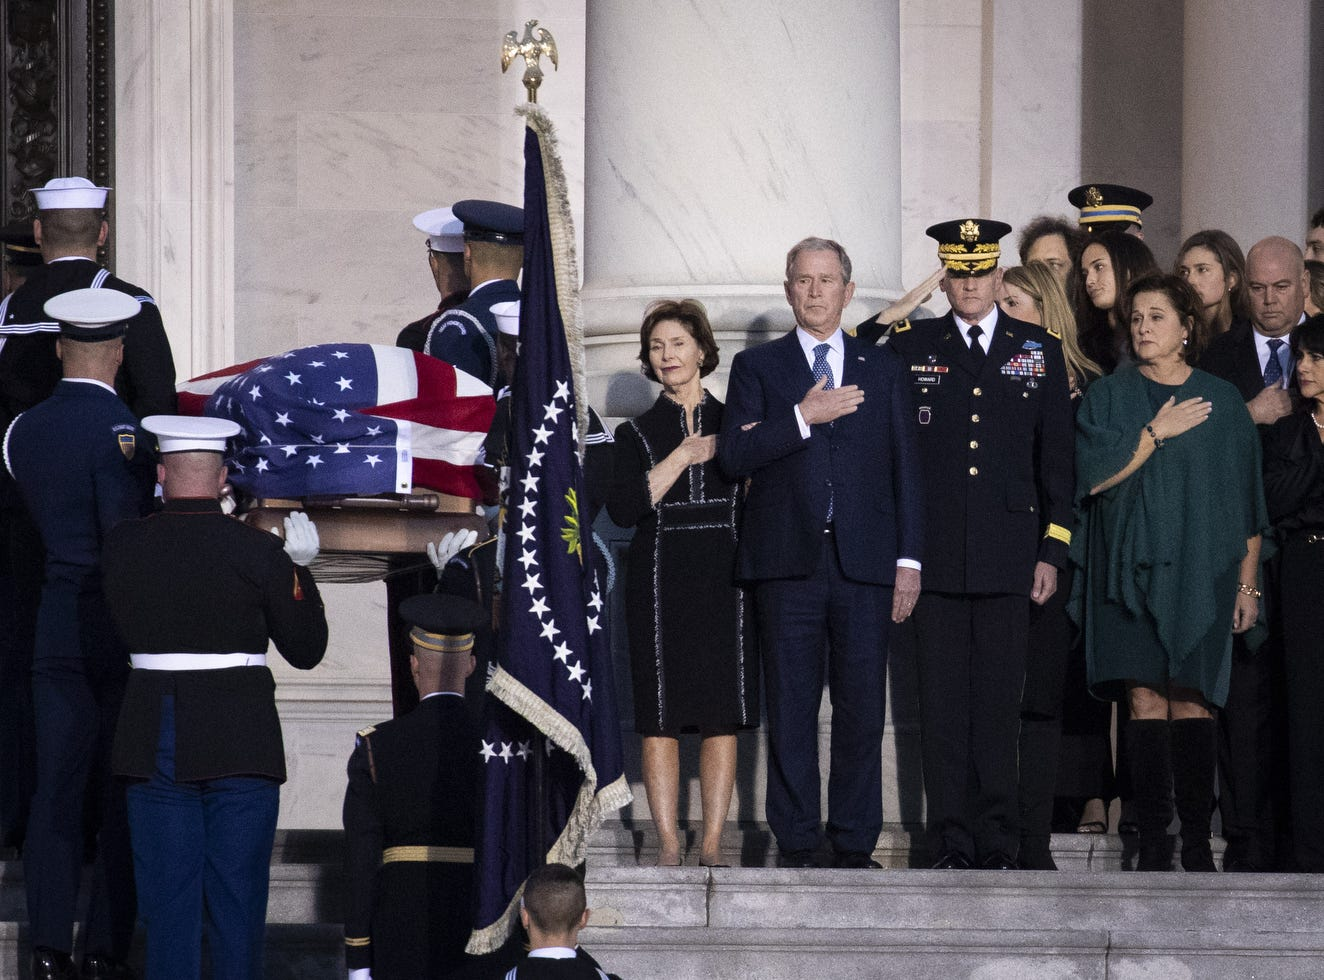 Former first lady Laura Bush and former president George W. Bush look on as the casket of the late former President George H.W. Bush arrives at the U.S. Capitol, Dec. 3, 2018.  A state funeral for Bush will be held in Washington over the next three days, beginning with him lying in state in the U.S. Capitol Rotunda until Wednesday morning.